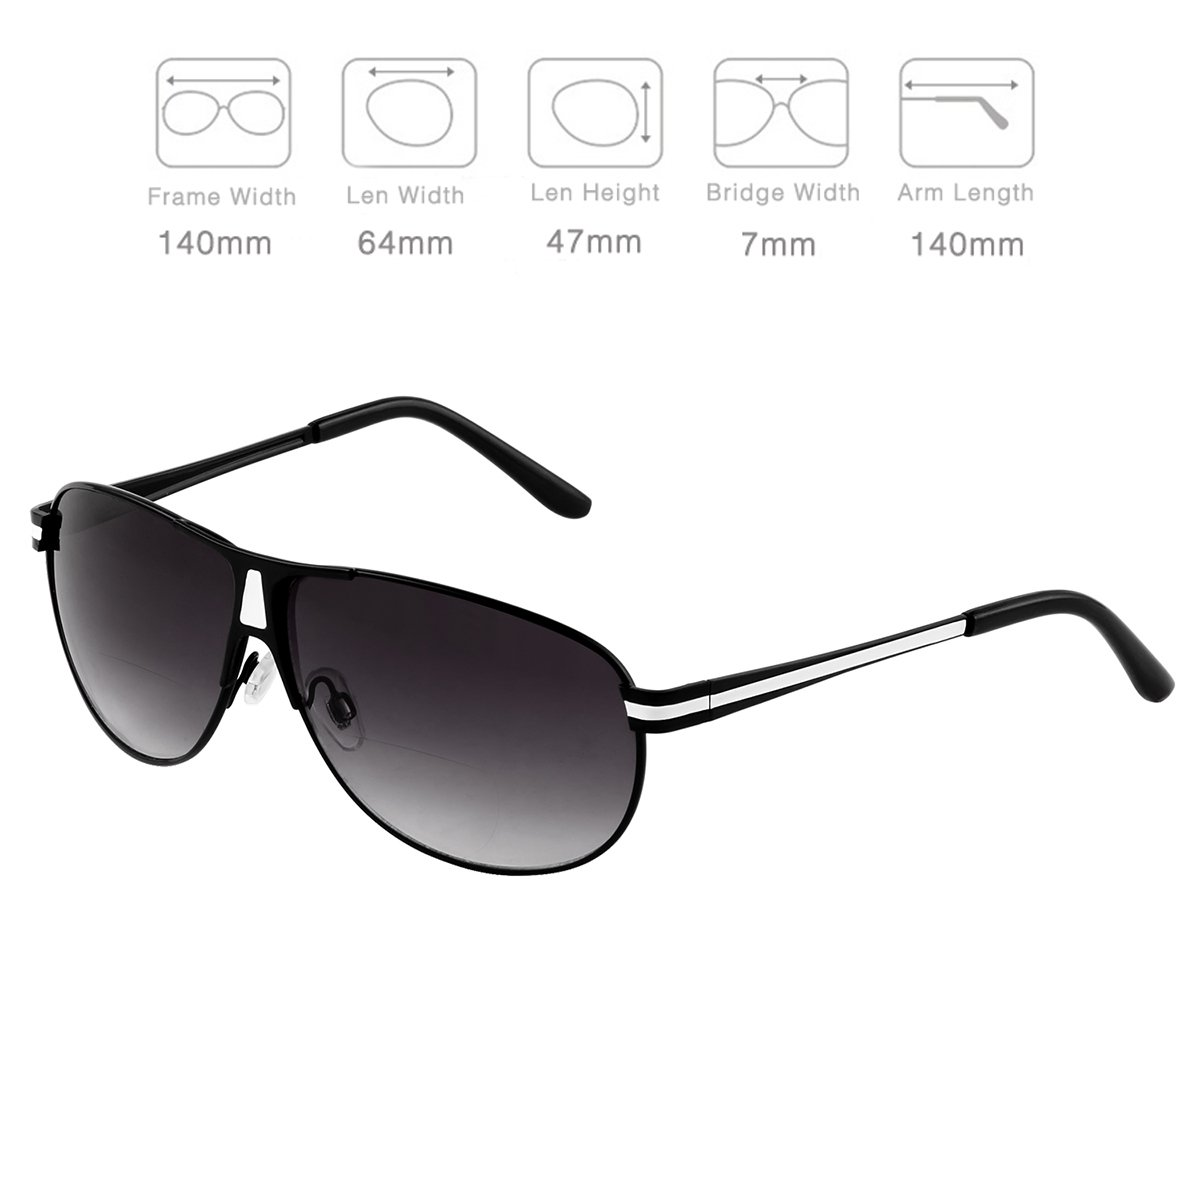 a76b1ac7afb Amazon.com  Bifocal Sunglasses Readers for Women Men Outdoor Reading Glasses  UV400 by O-LET (Black Frame Black Lens